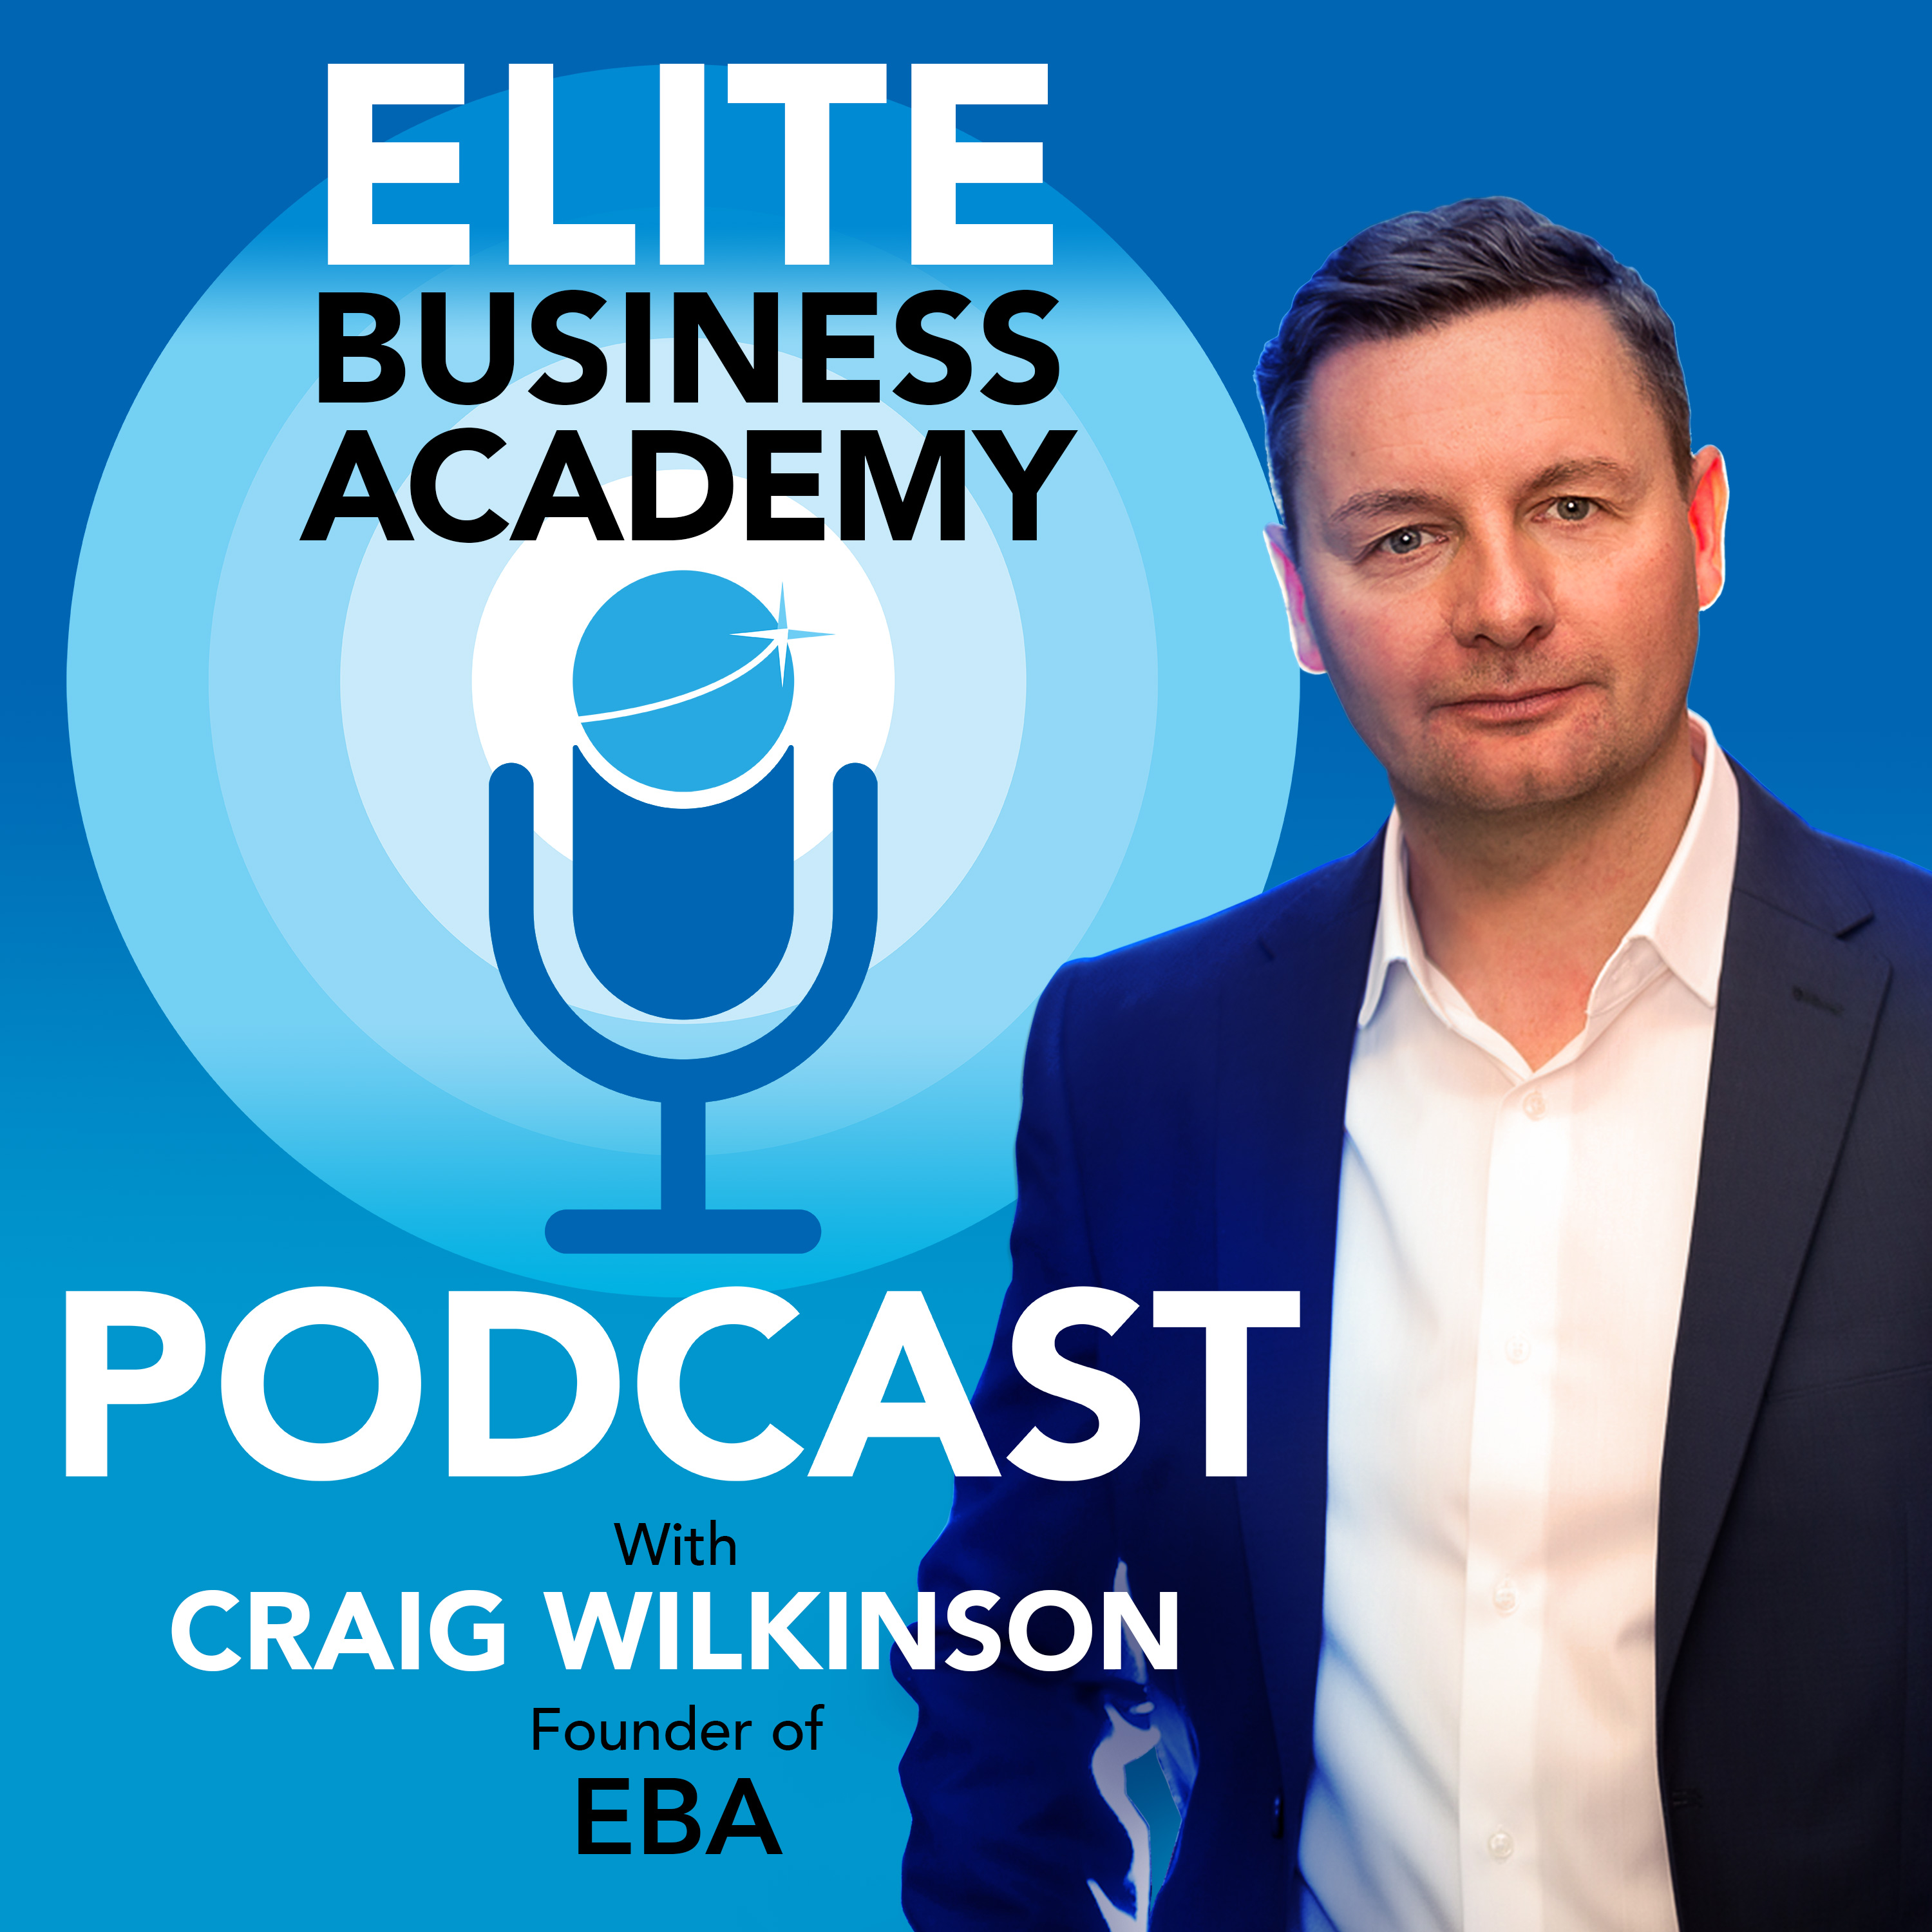 Elite Business Academy Podcast